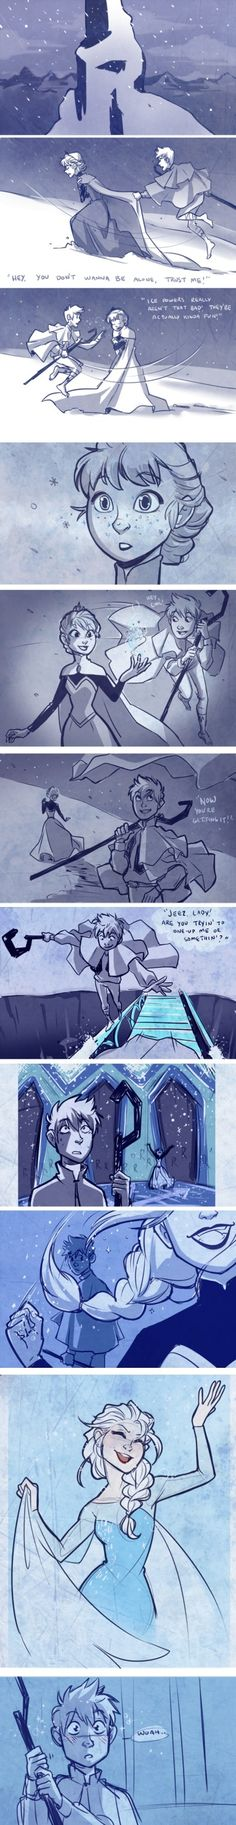 Frozen fan art - Jack Frost / Elsa Okay, I sorta ship this now... I can work with this. :3